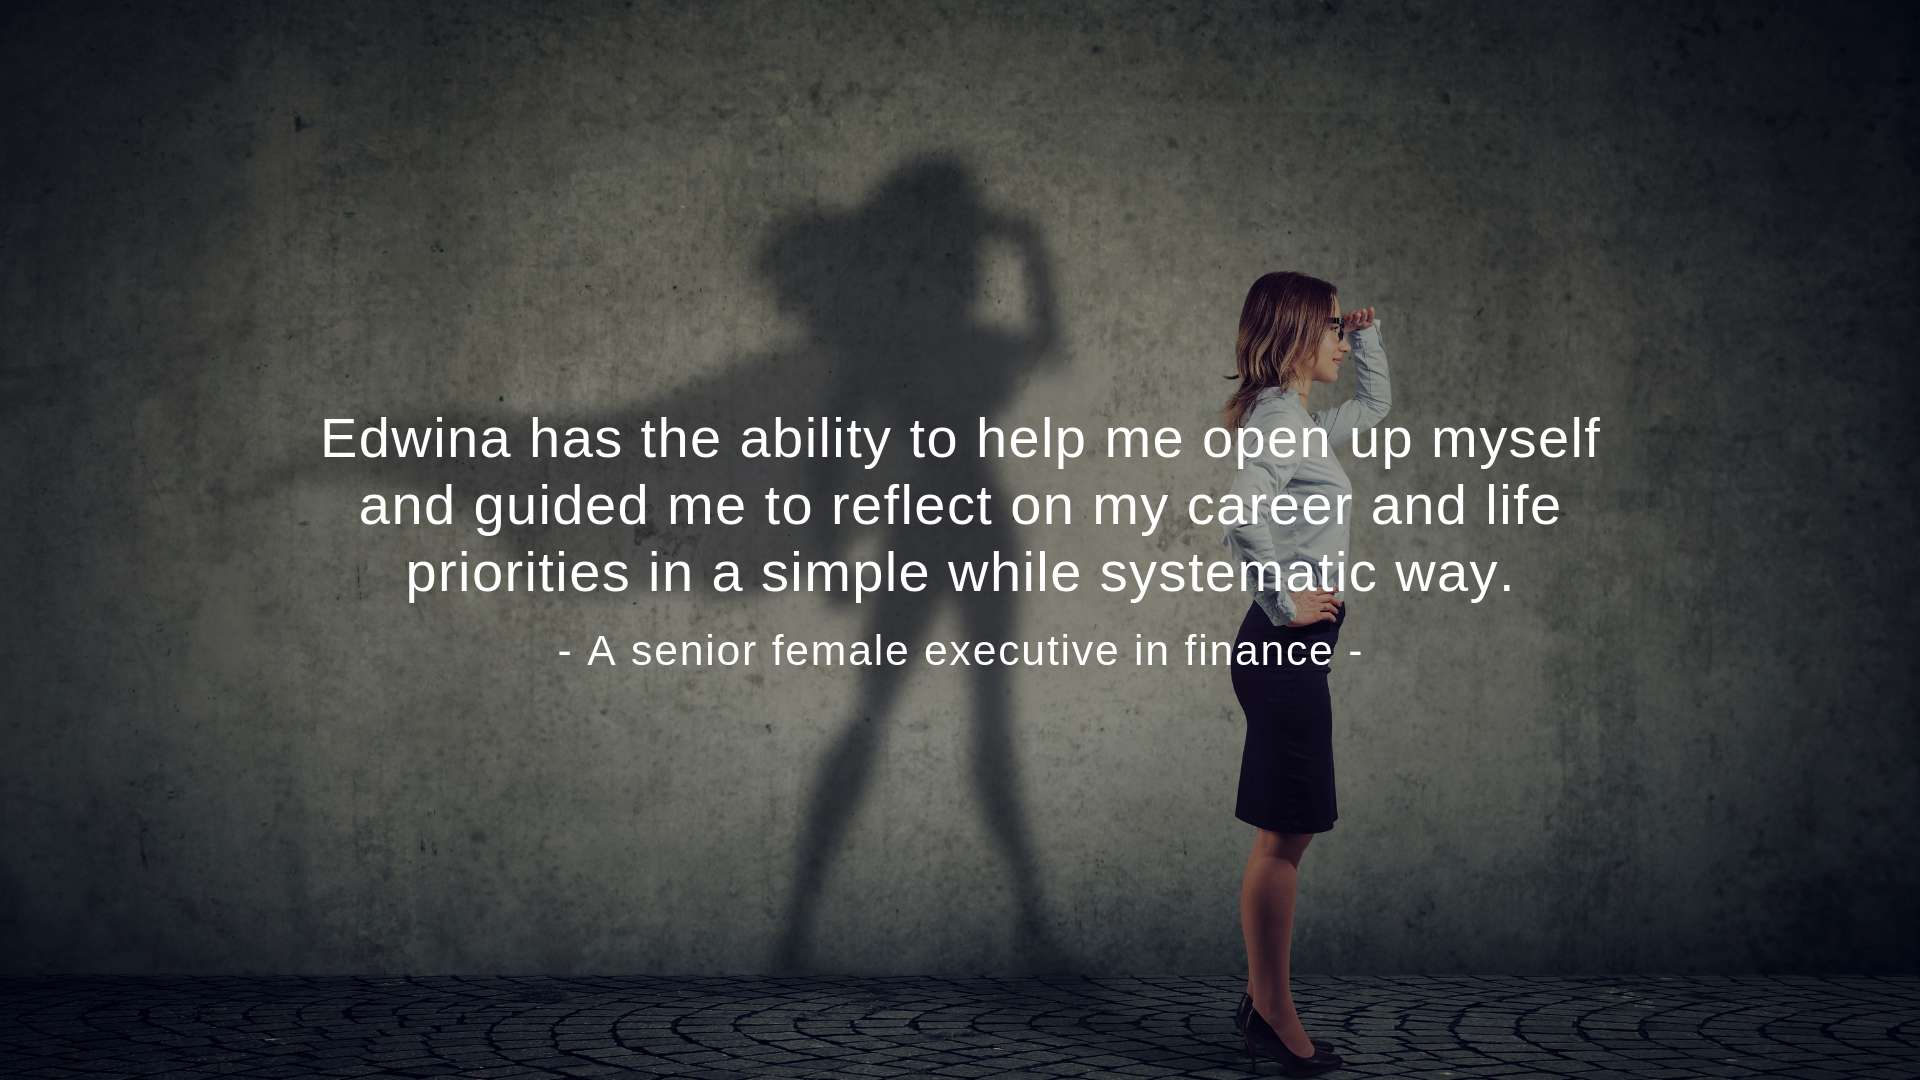 """Edwina has the ability to help me open up myself,"" A senior female executive said."